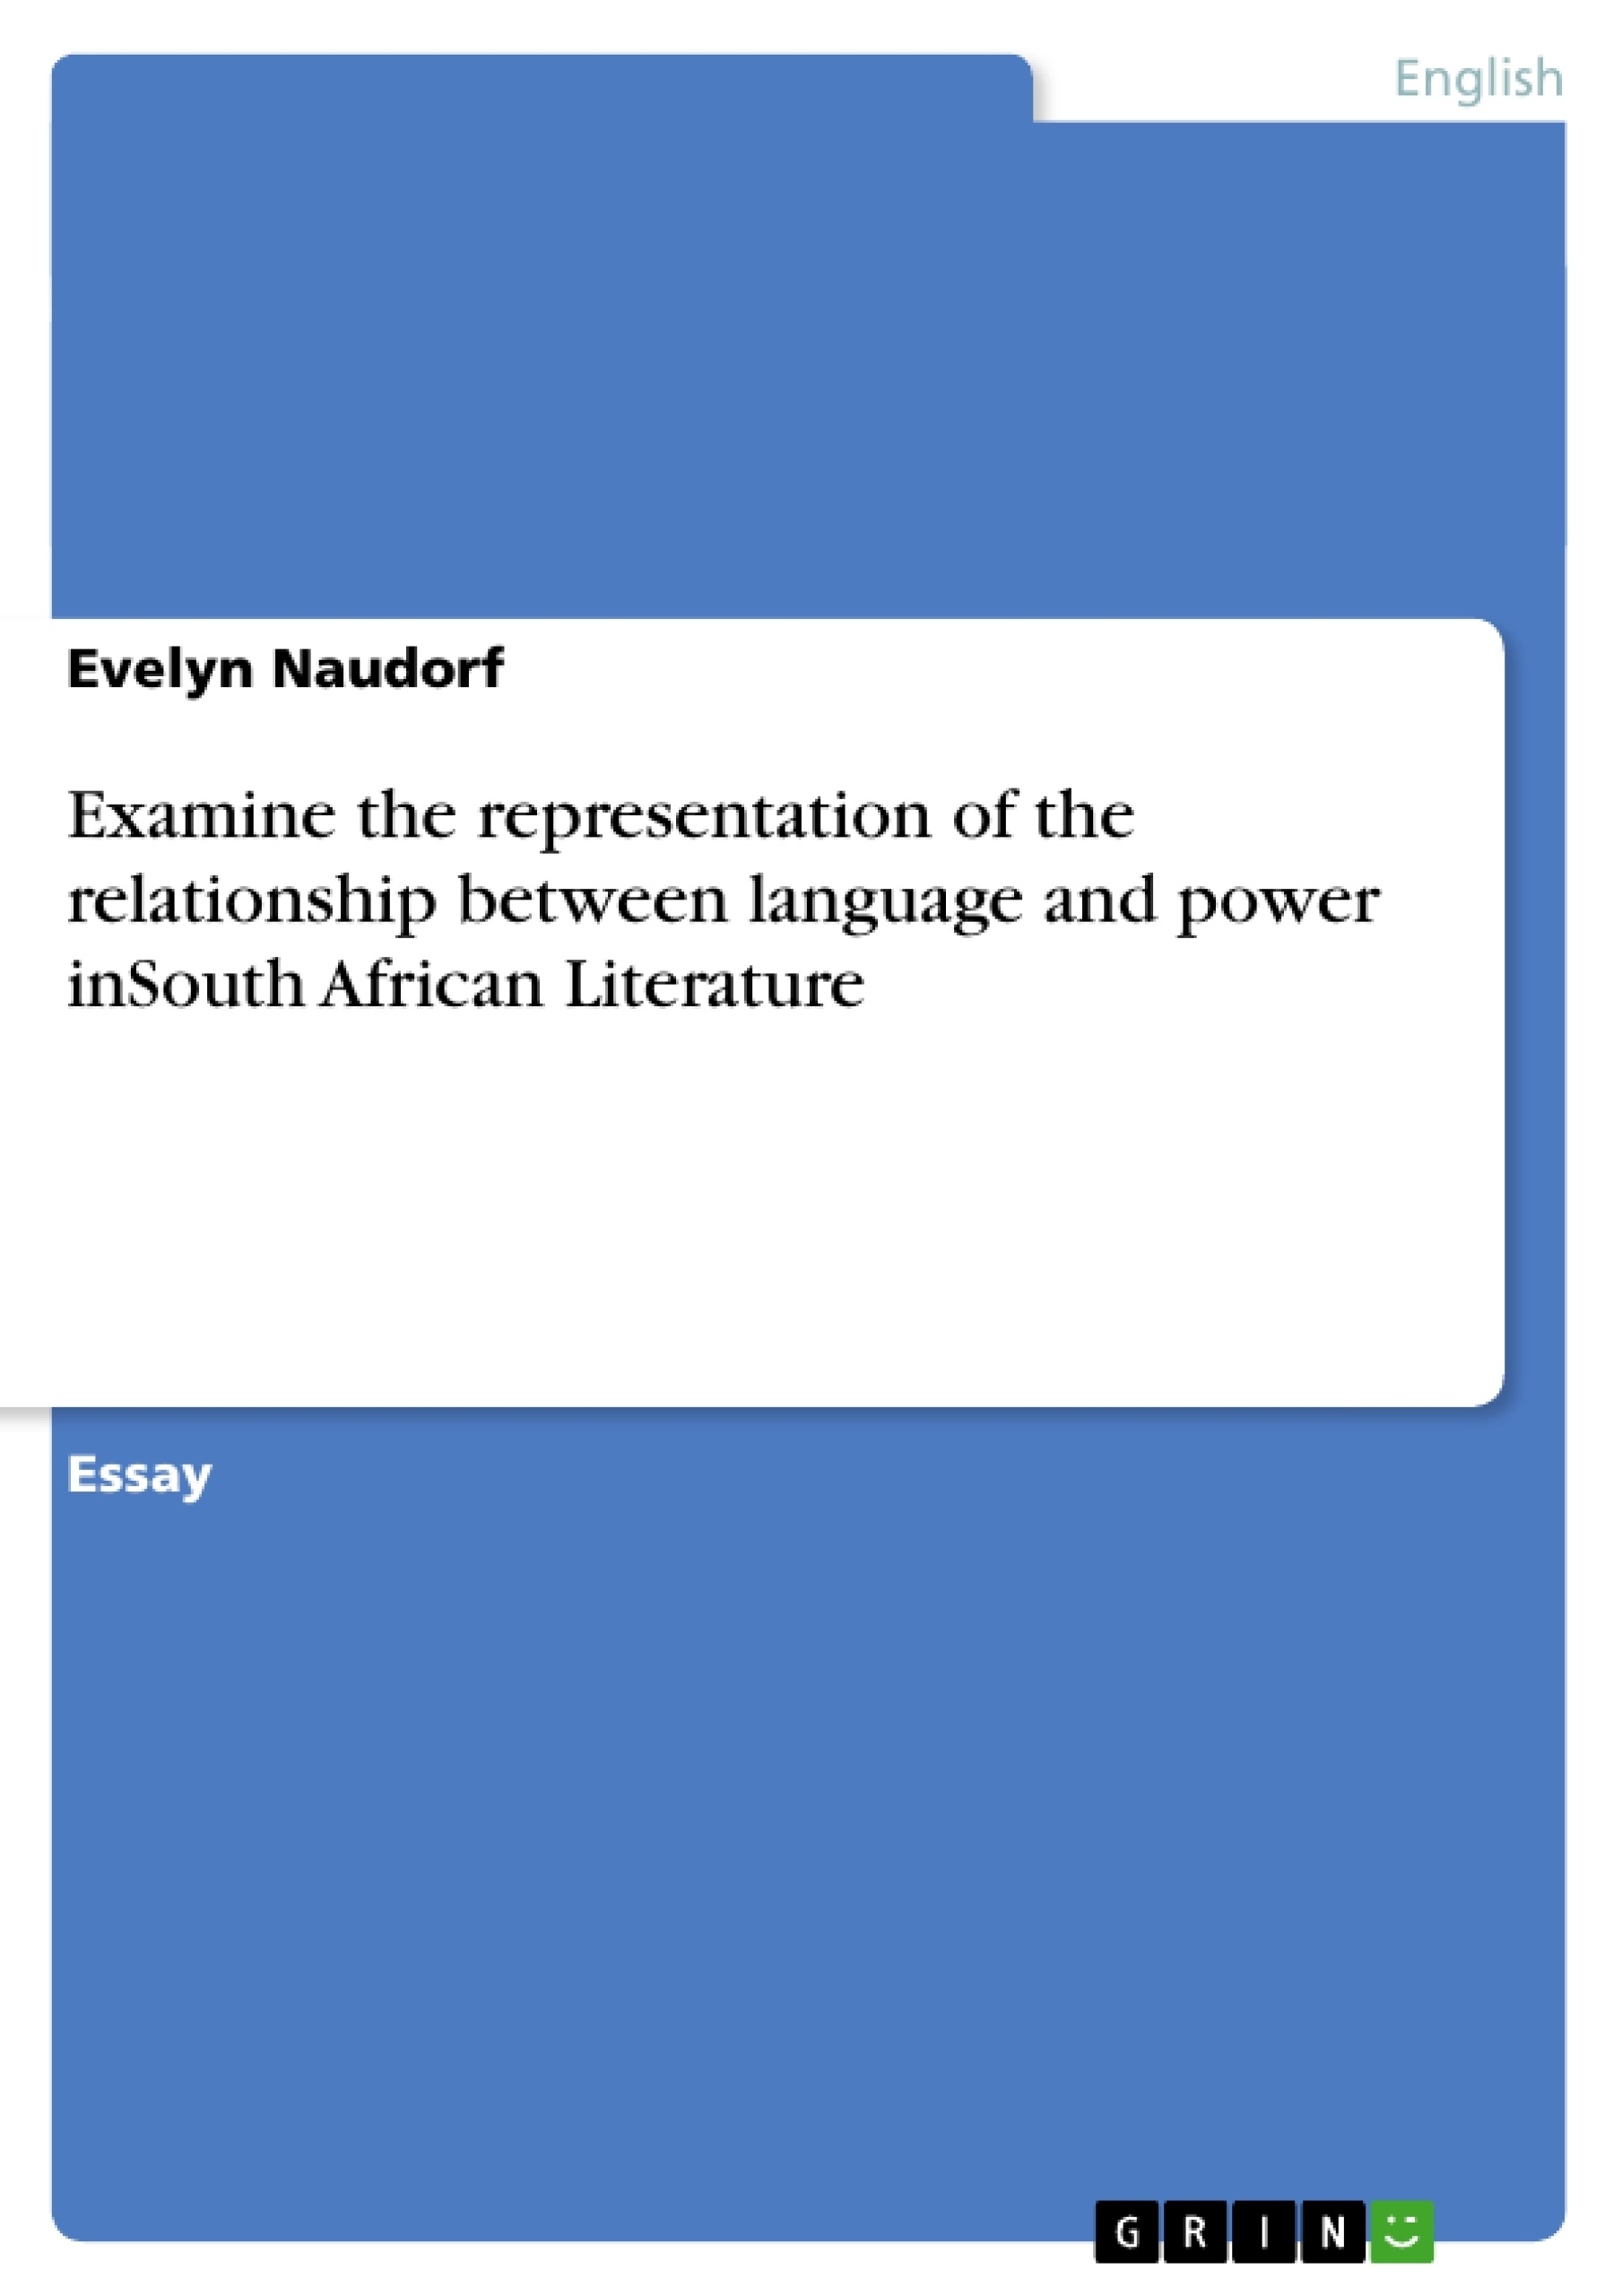 Title: Examine the representation of  the relationship between language and power inSouth African Literature